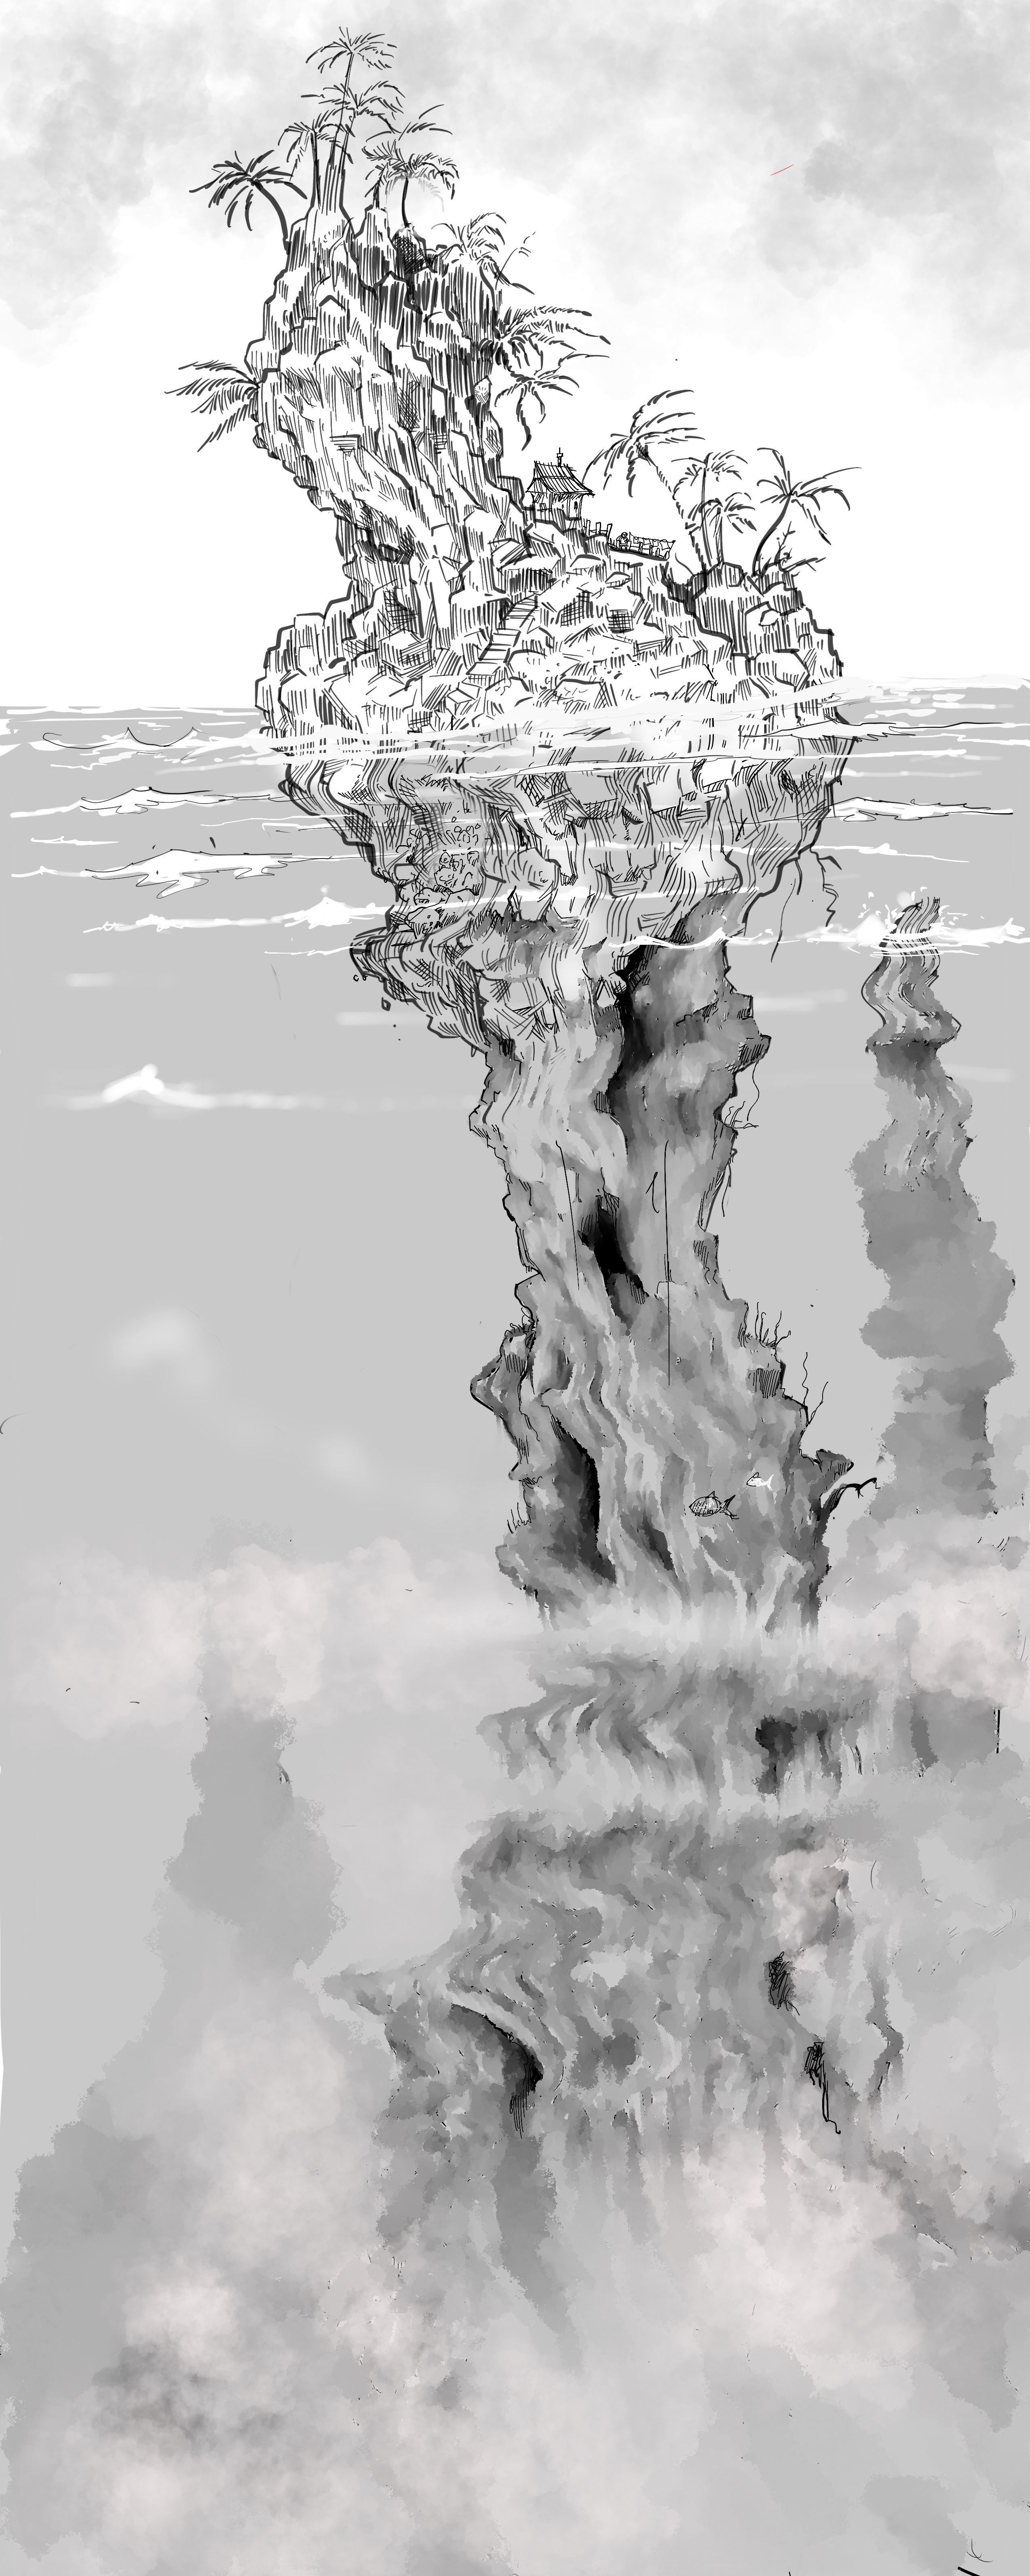 Island doodle extended